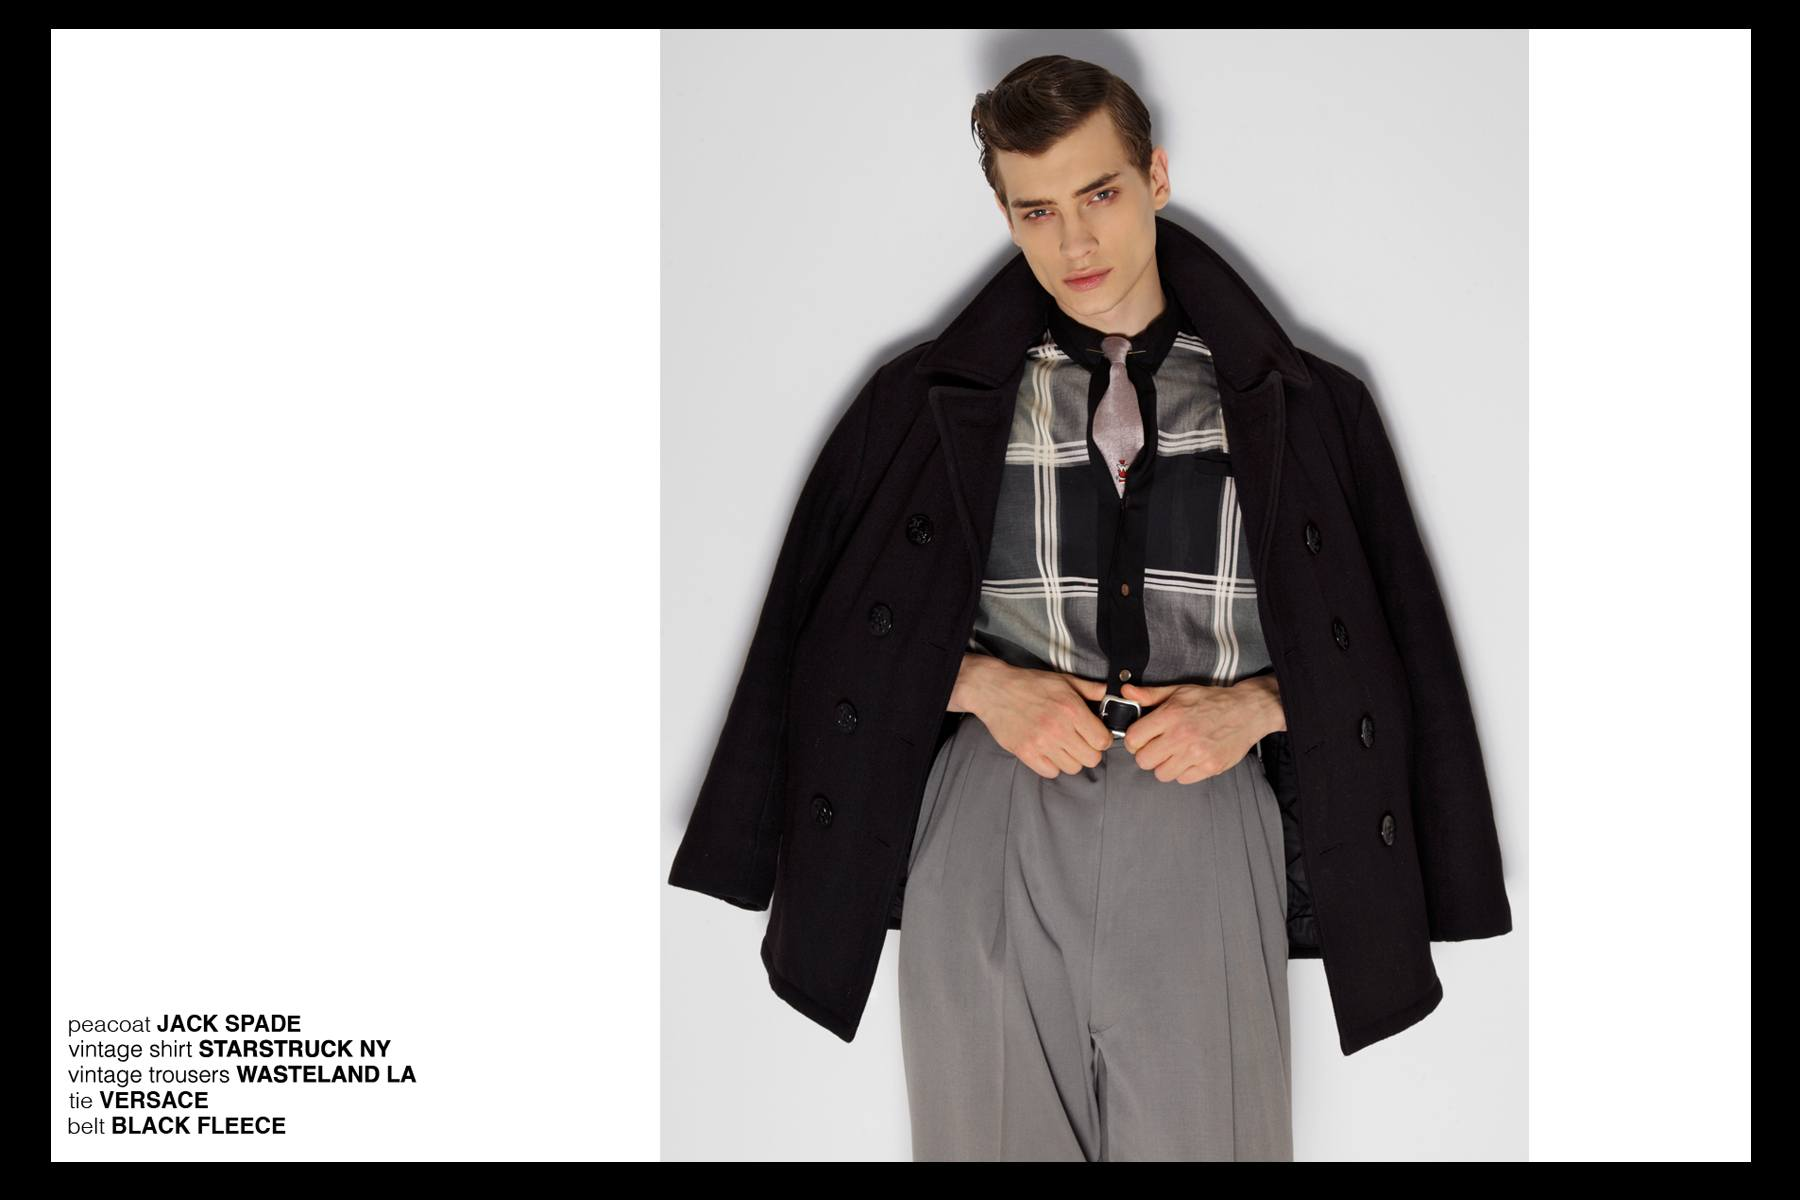 Branko models Jack Spade, Versace and Black Fleece for Ponyboy Magazine, photographed by Alexander Thompson.